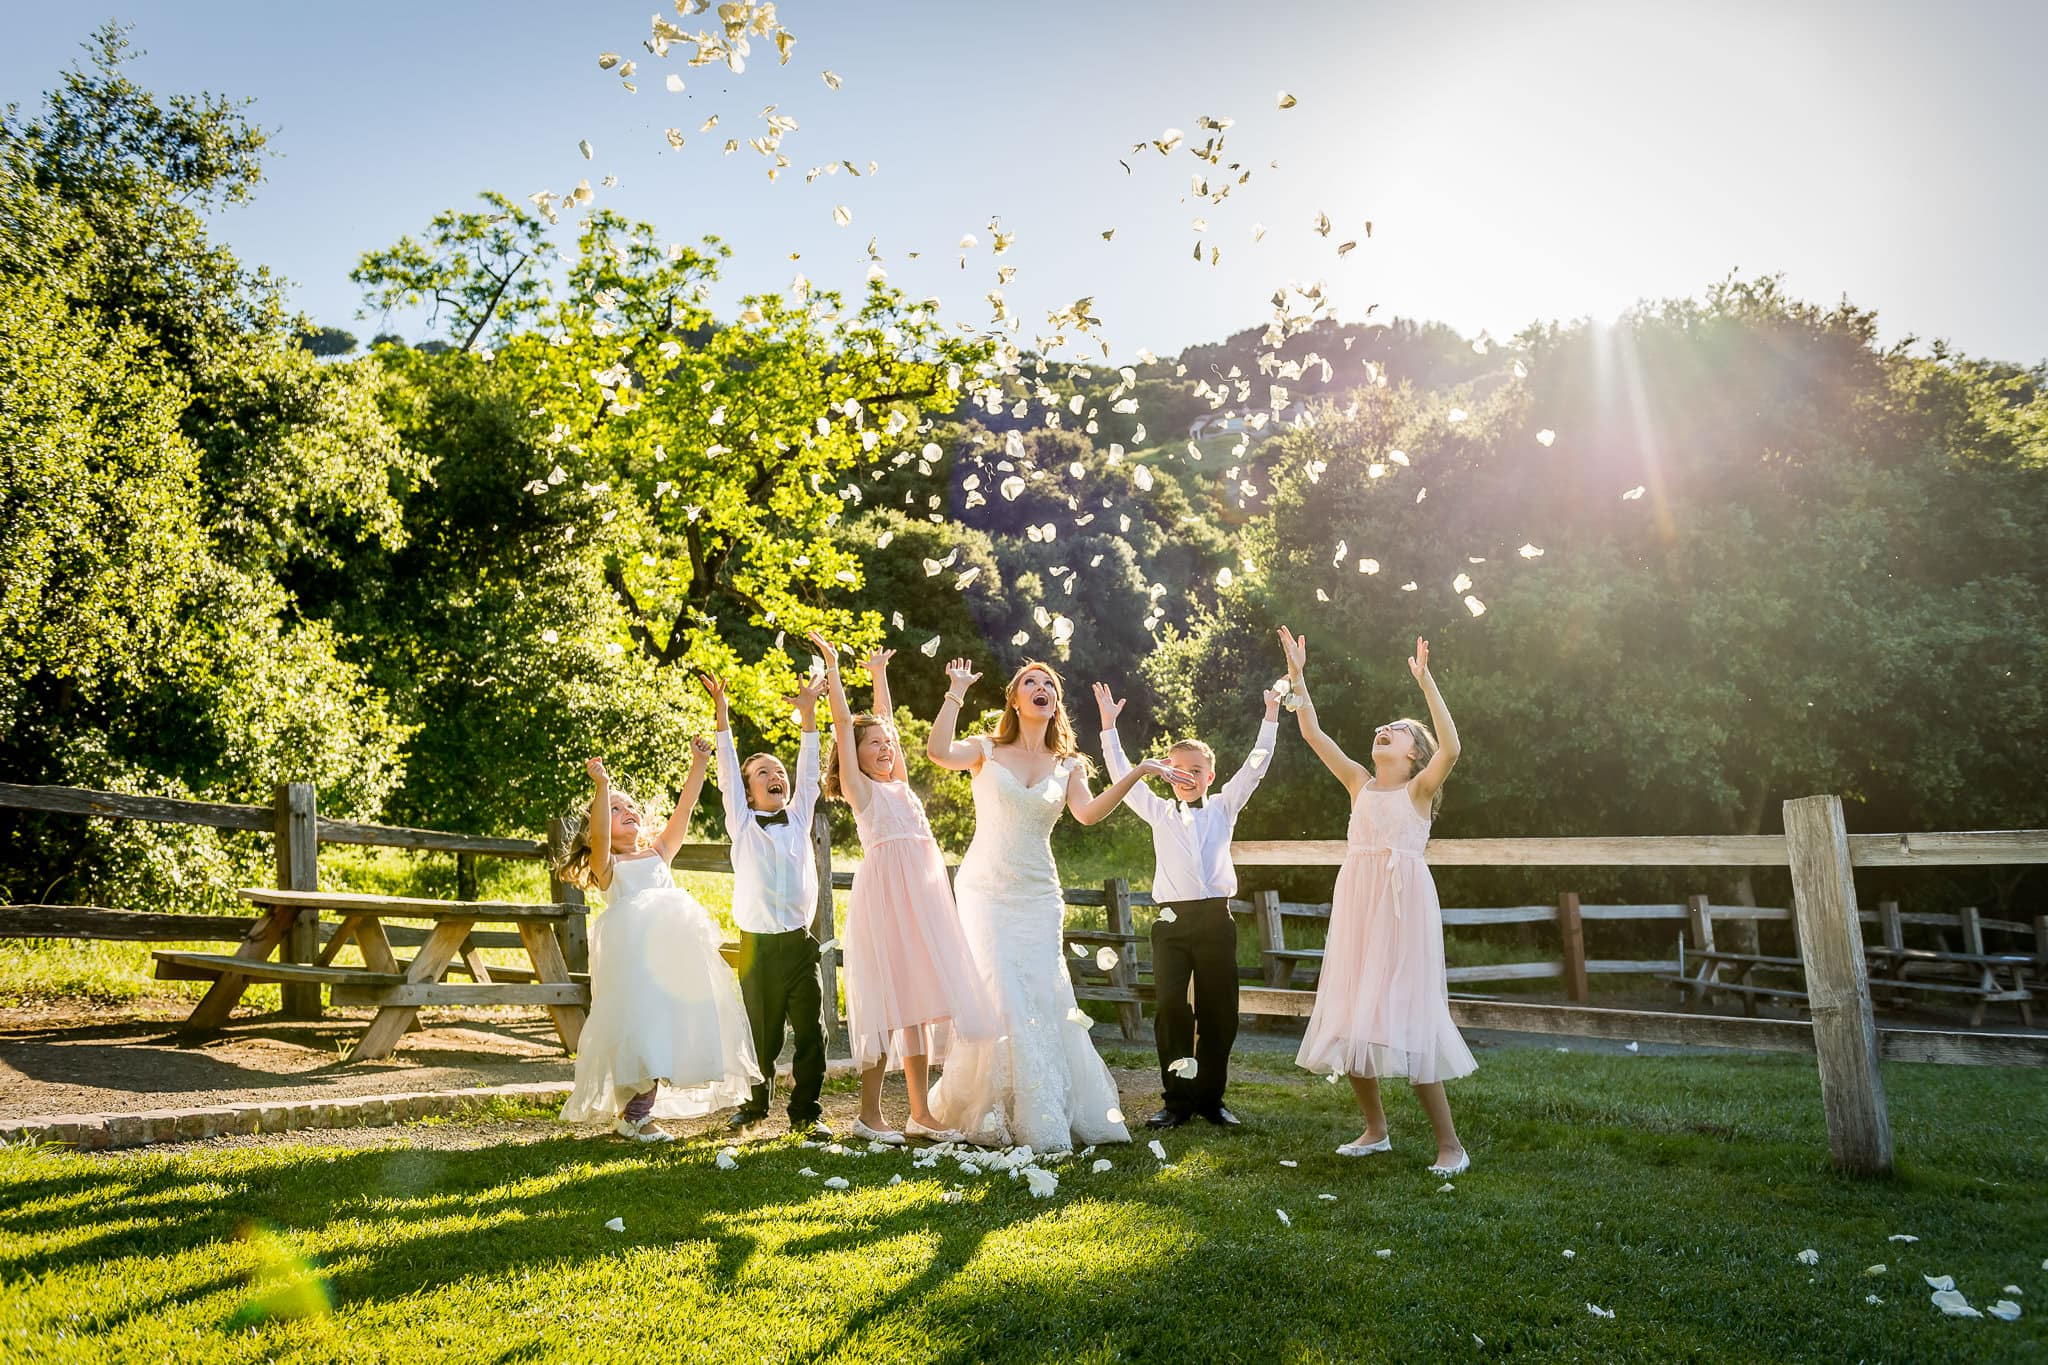 Bride and kids throwing rose pedals into the air